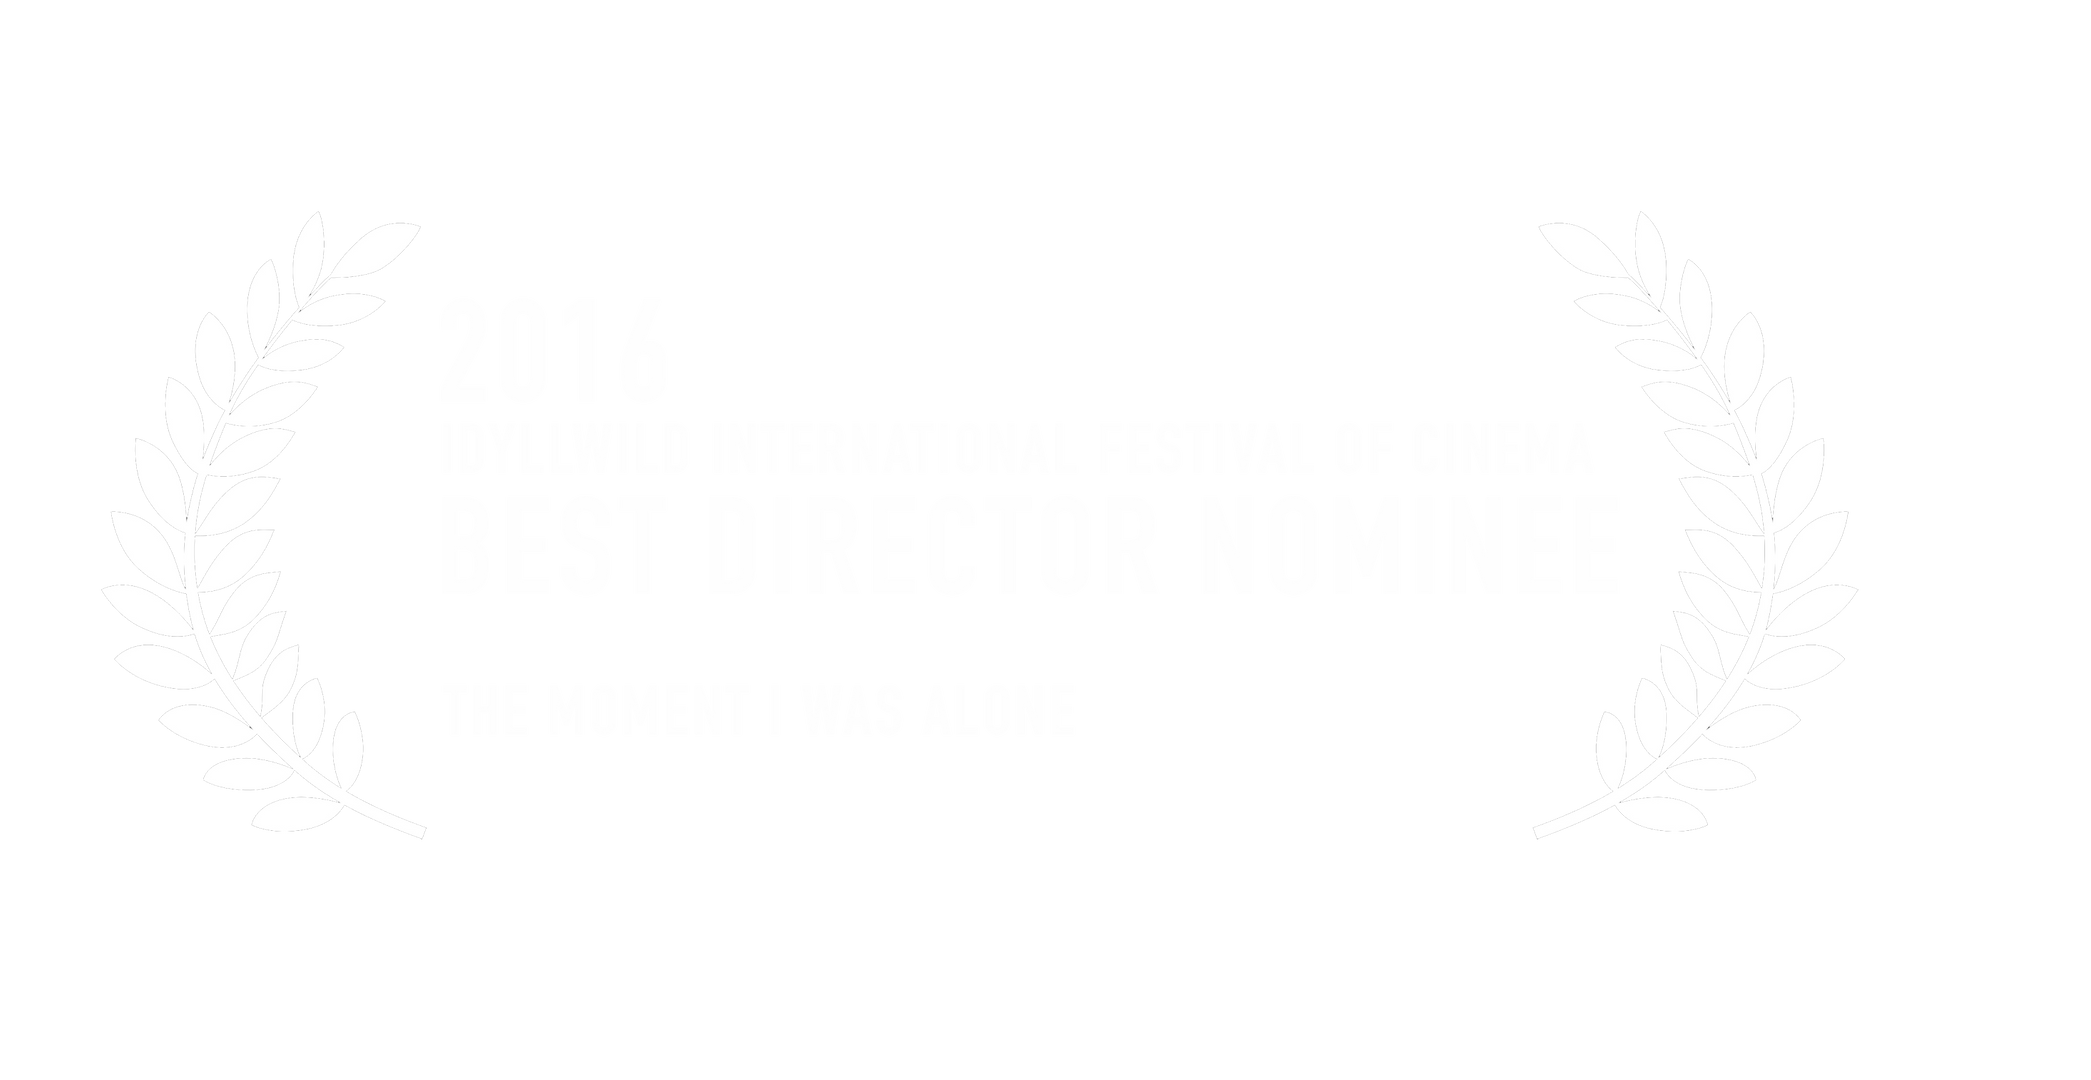 IIFC_BEST DIRECTOR NOMINEE.png